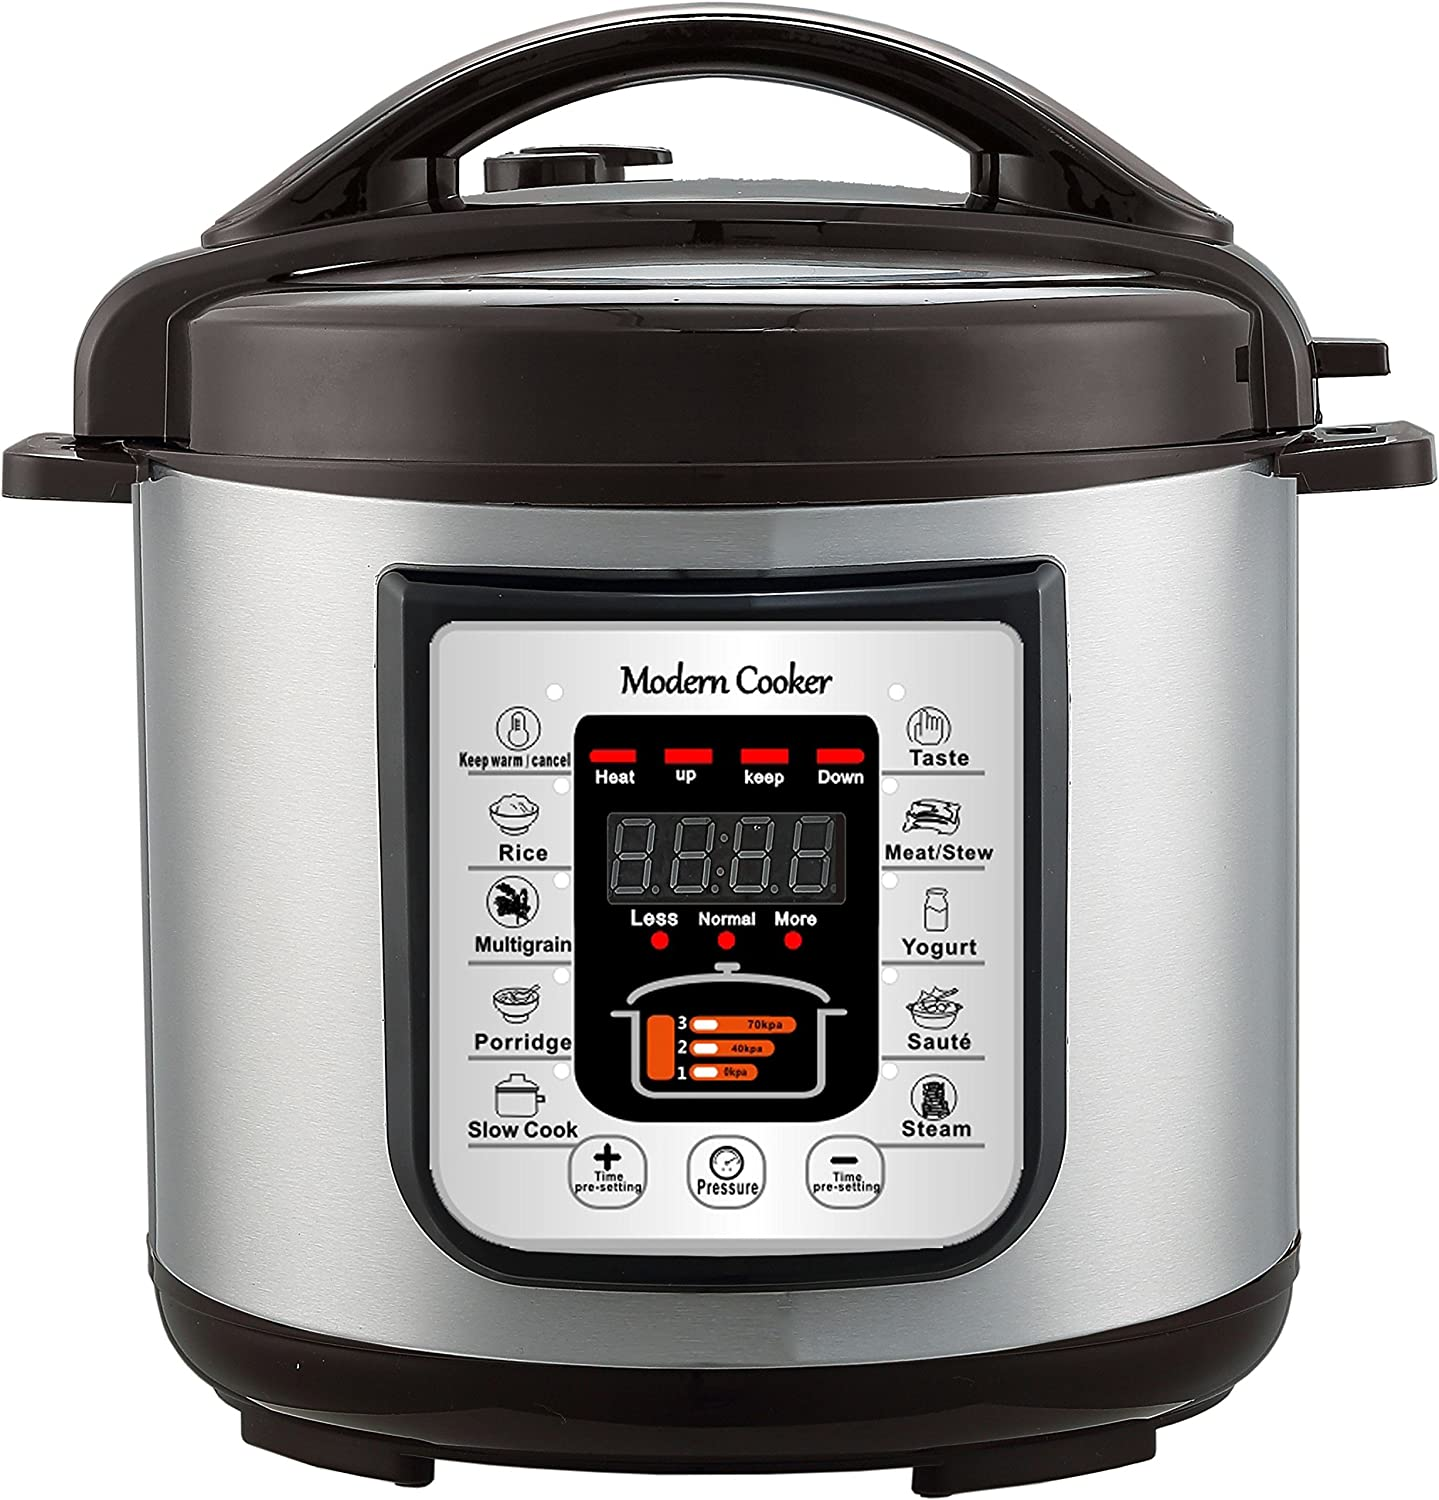 Modern Cooker BD-OJ-6L 1 Multi-Functional Electric Pressure Cooker, 6 quart, Silver